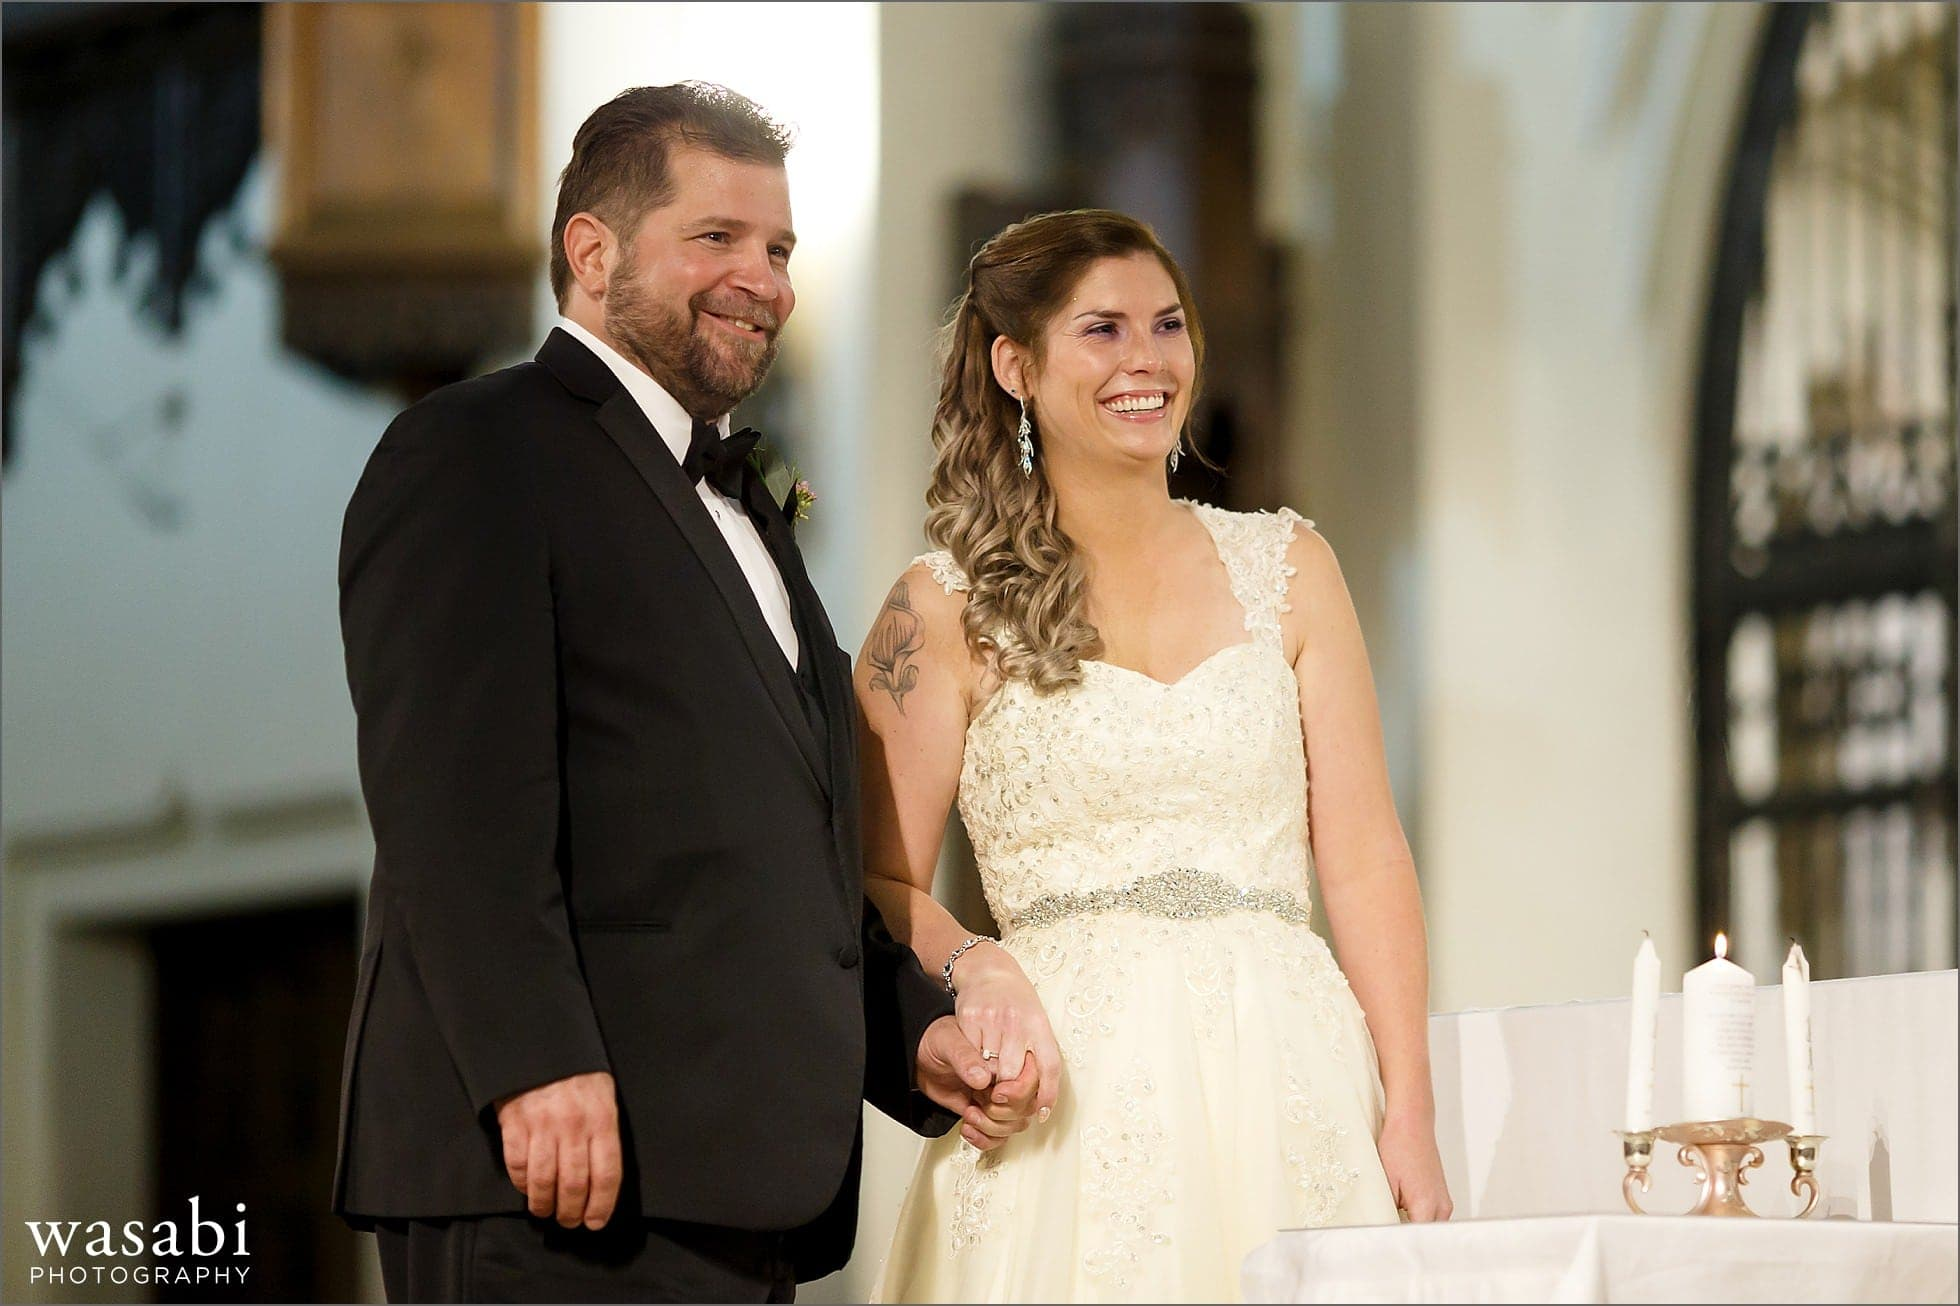 bride and groom smile while looking at their guests during wedding ceremony at St Luke Roman Catholic Church in River Forest